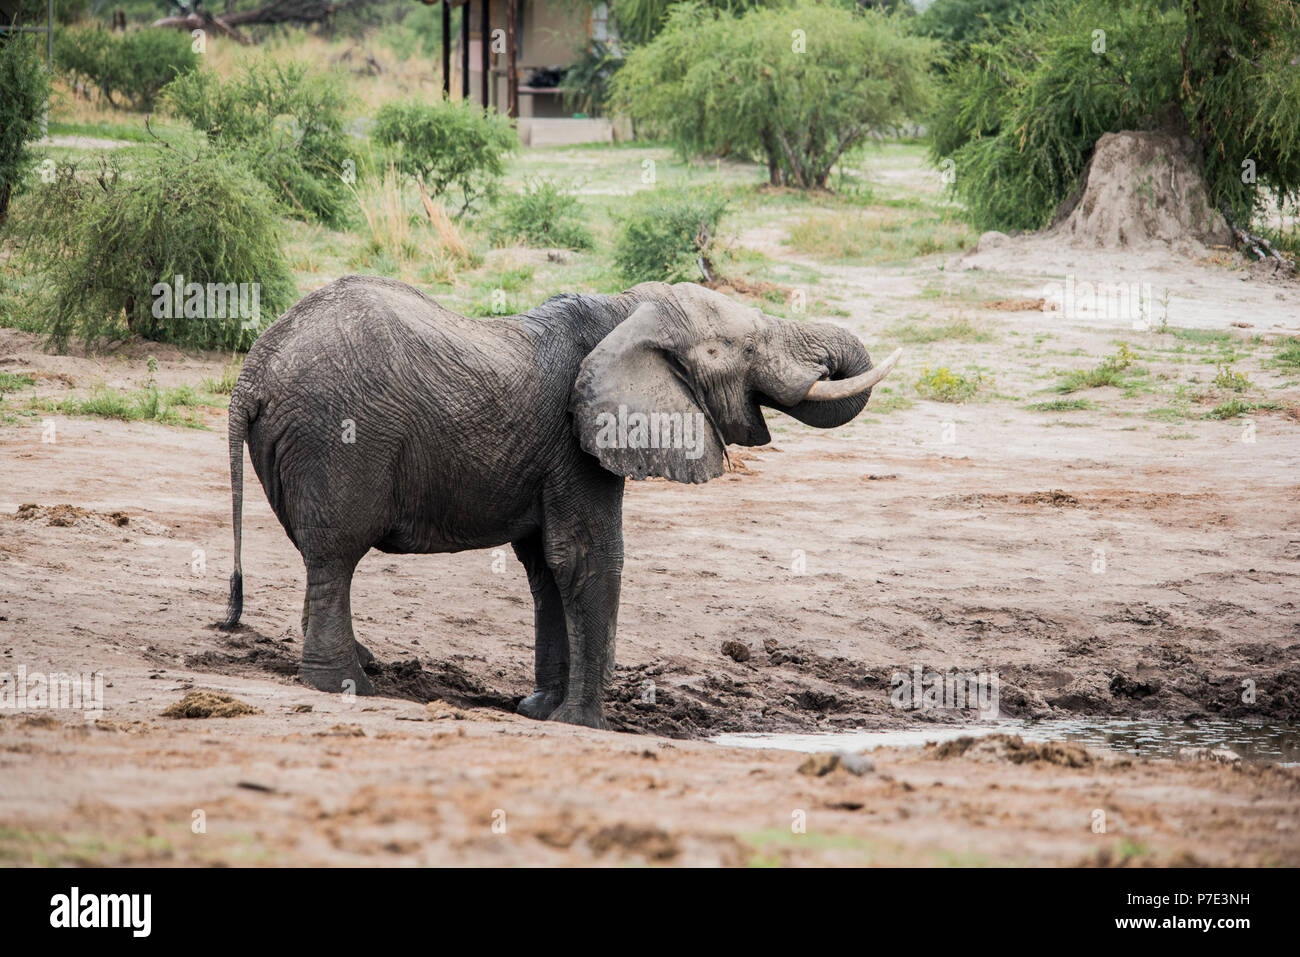 Elephant, Chobe National Park, Botswana - Stock Image